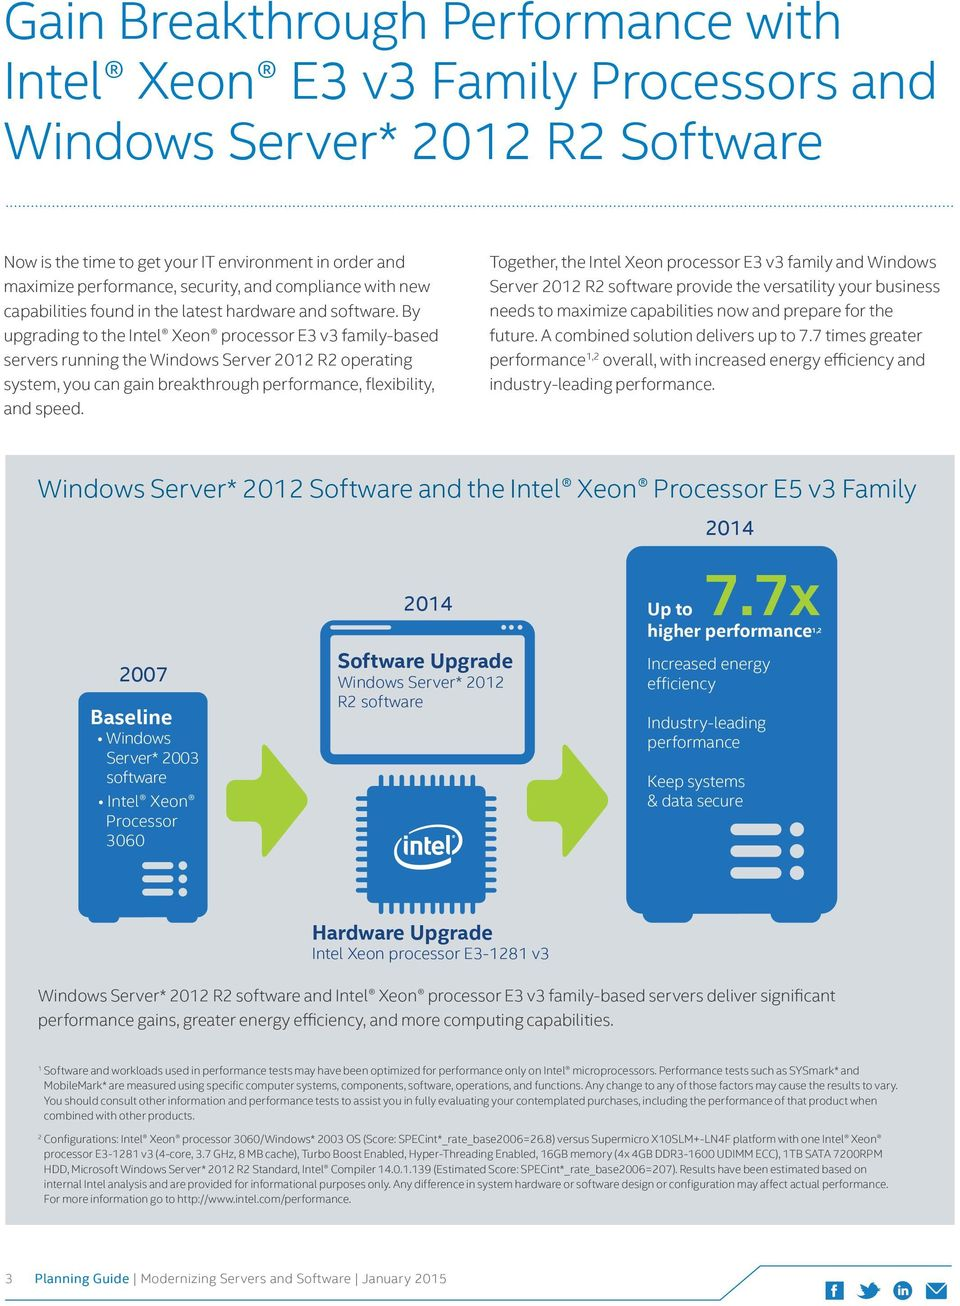 By upgrading to the Intel Xeon processor E3 v3 family-based servers running the Windows Server 2012 R2 operating system, you can gain breakthrough performance, flexibility, and speed.